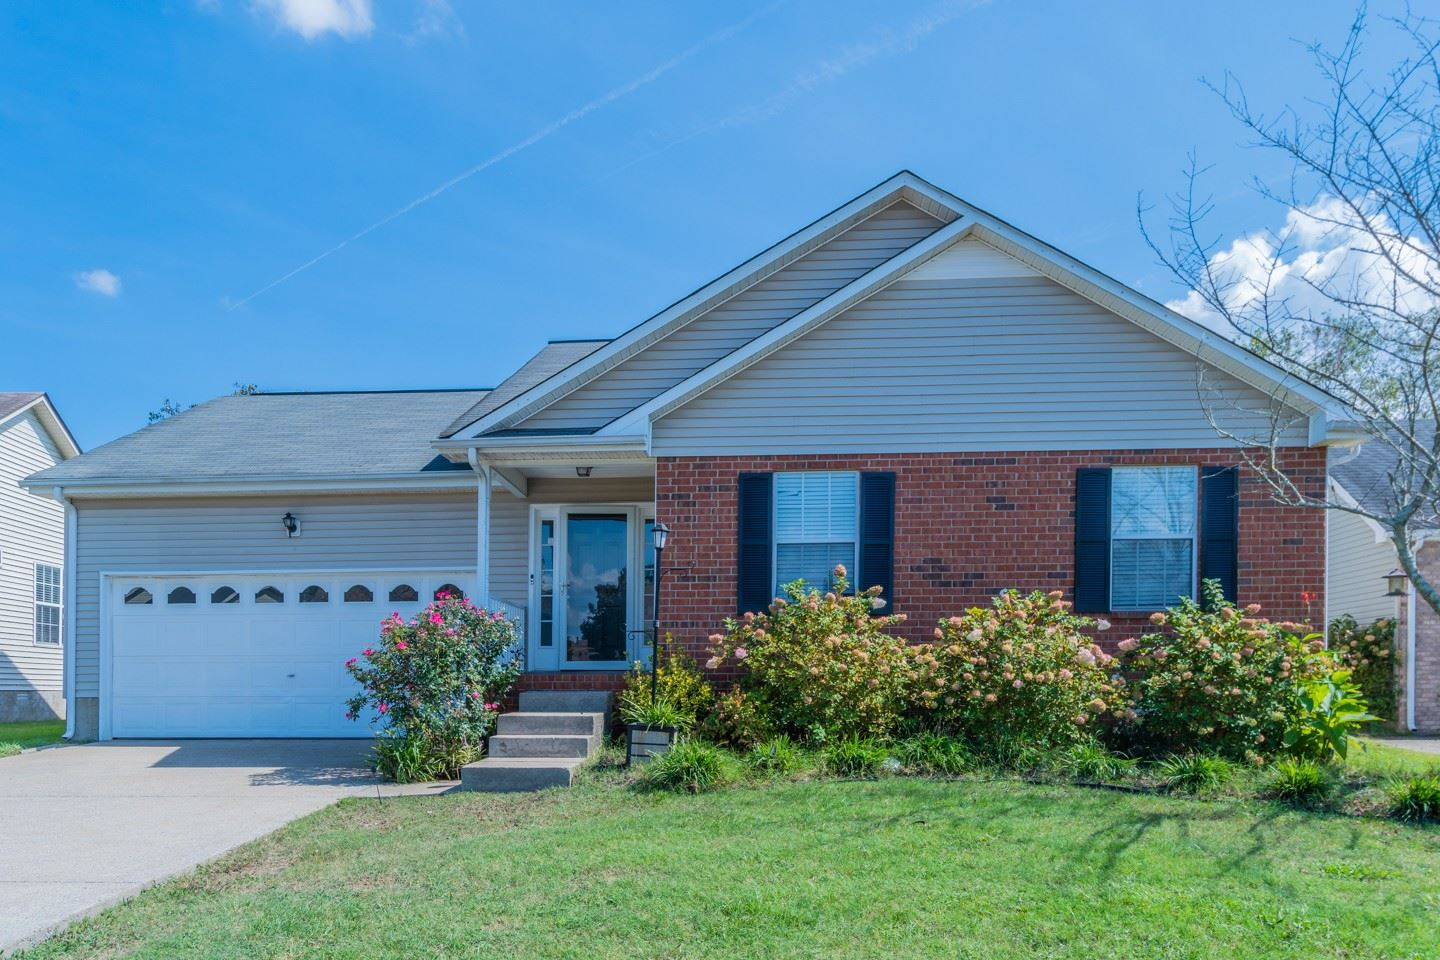 2269 Riverway Dr, Old Hickory, TN 37138 - MLS#: 2297212